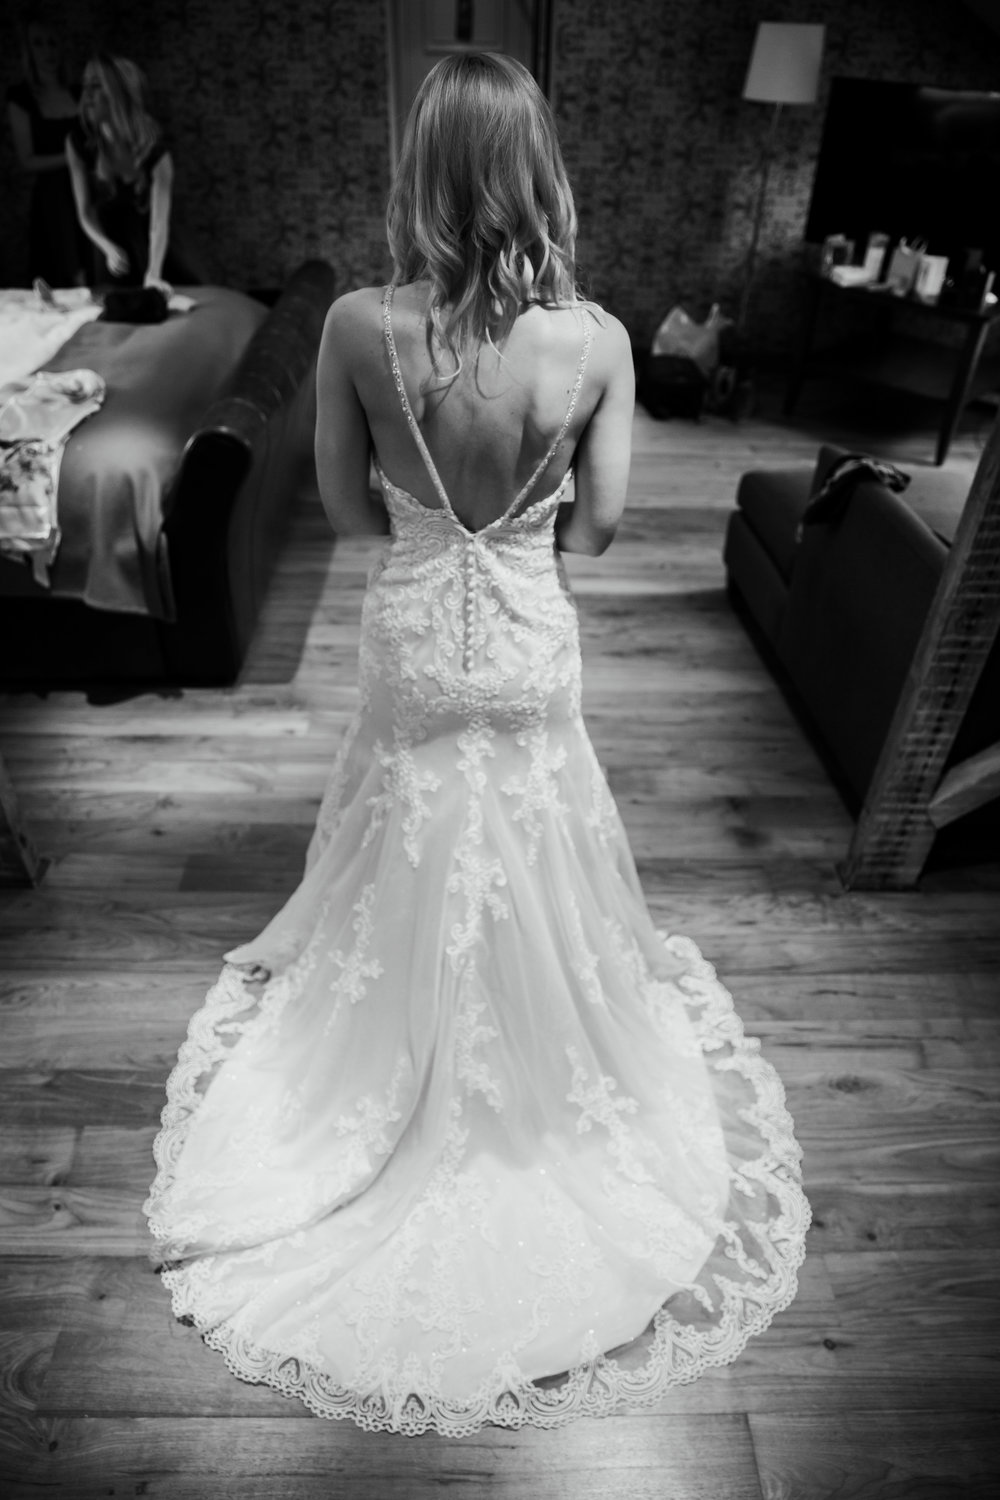 Bride in wedding dress from The Bridal Emporium Leeds